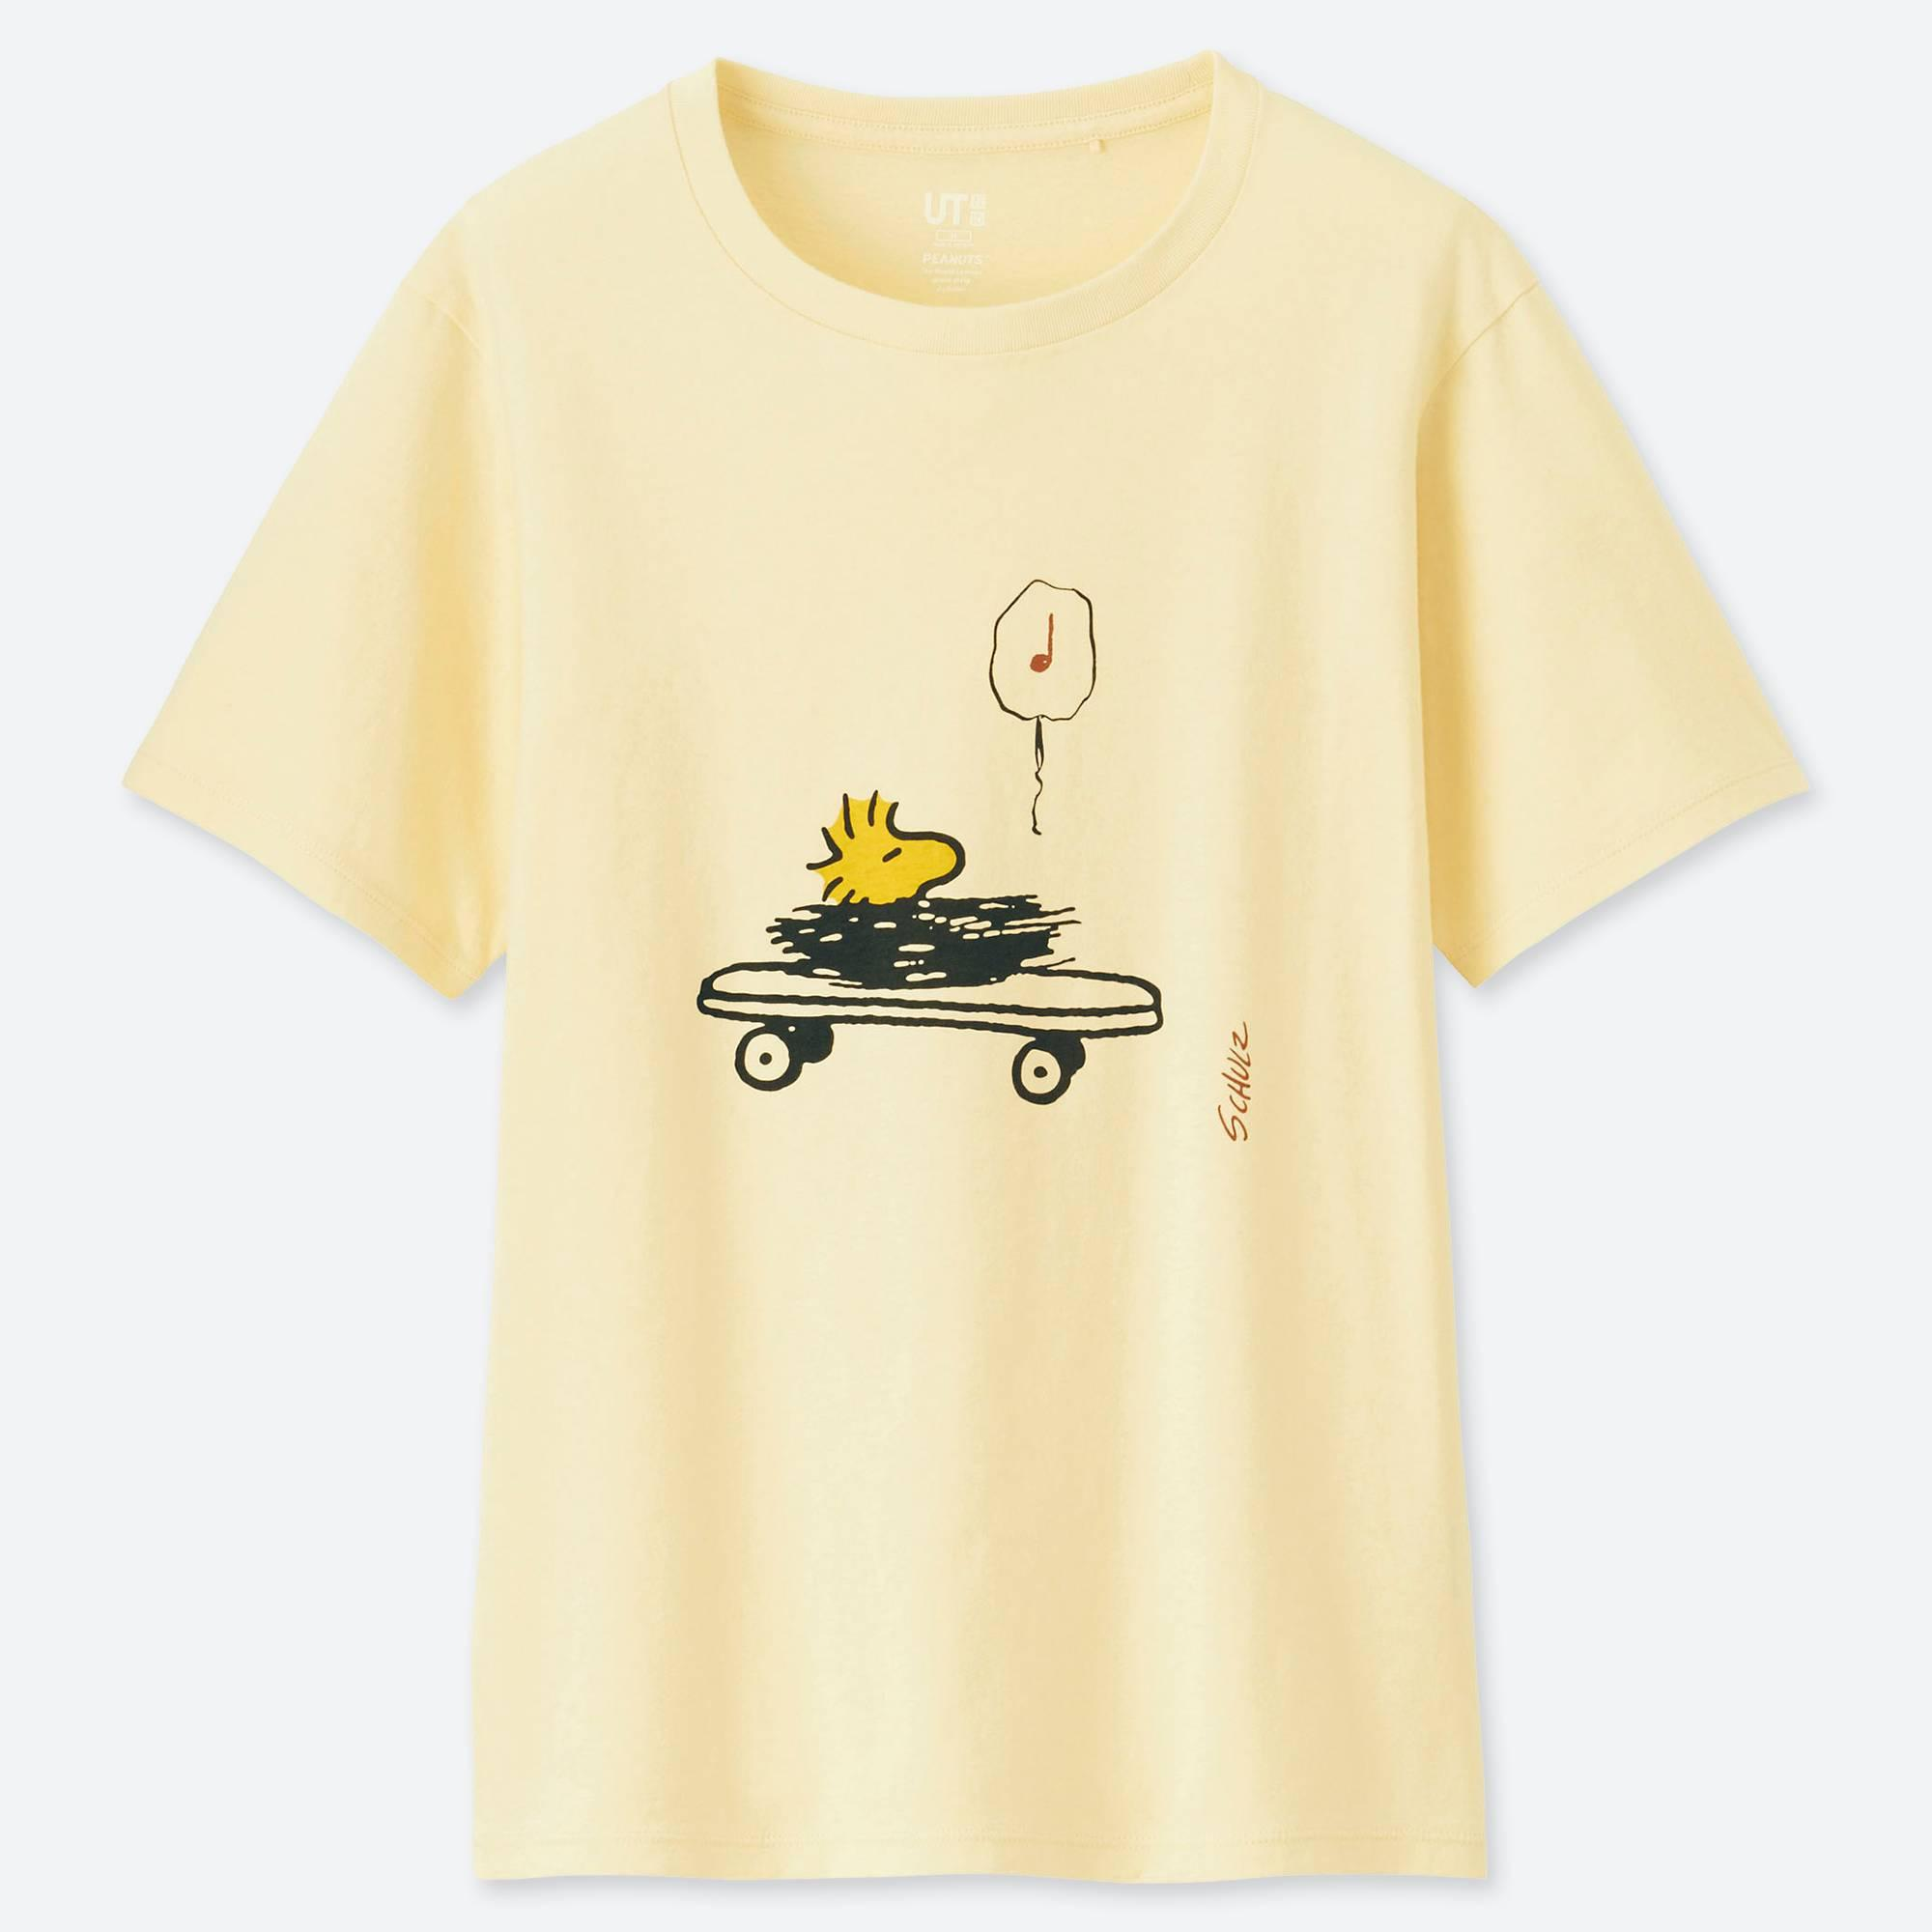 daff068a253e9 Lyst - Uniqlo Women Peanuts Short-sleeve Graphic T-shirt in Yellow